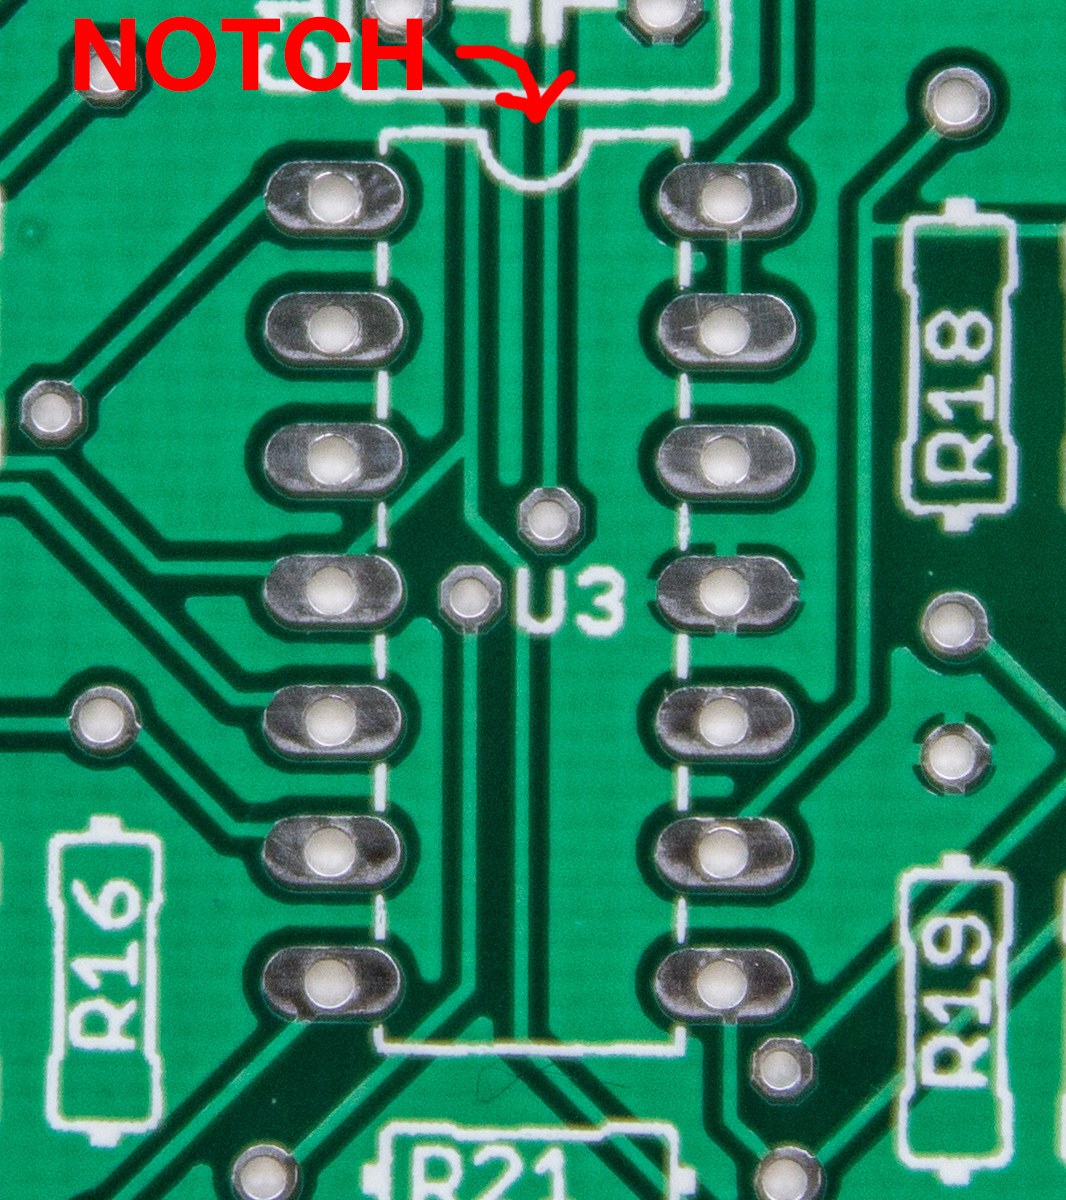 Troubleshooting Your Build Synthrotek Learn To The Atari Punk Console Electronic Circuits Circuit Trouble 004 003 Check Make